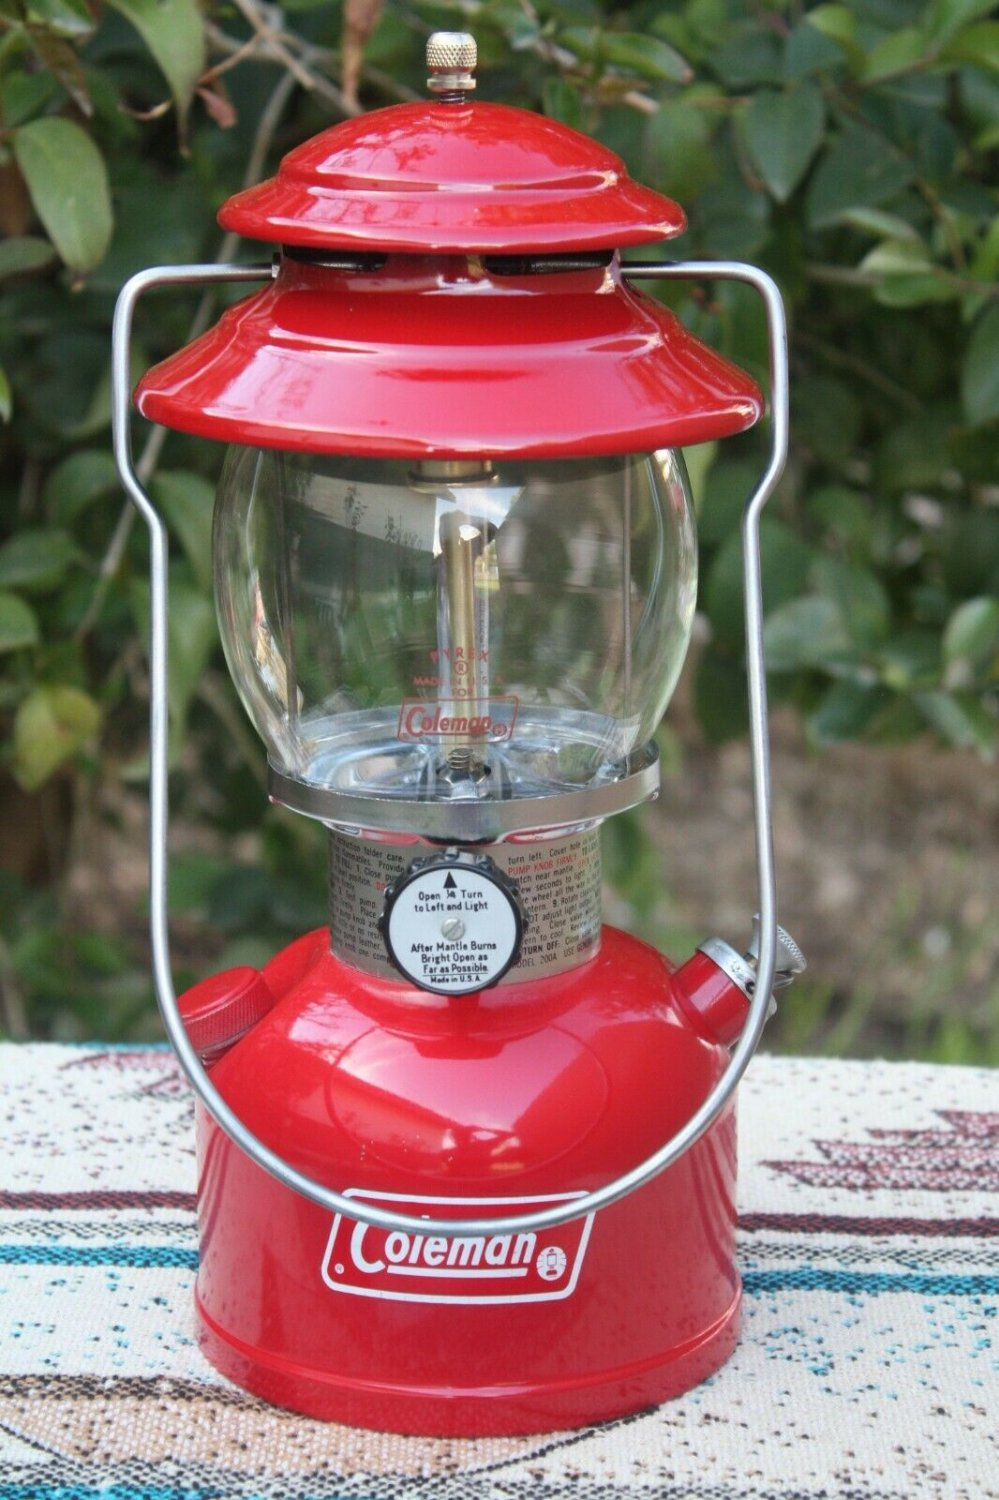 COLEMAN 200A RED LANTERN 1976 VERY NICE